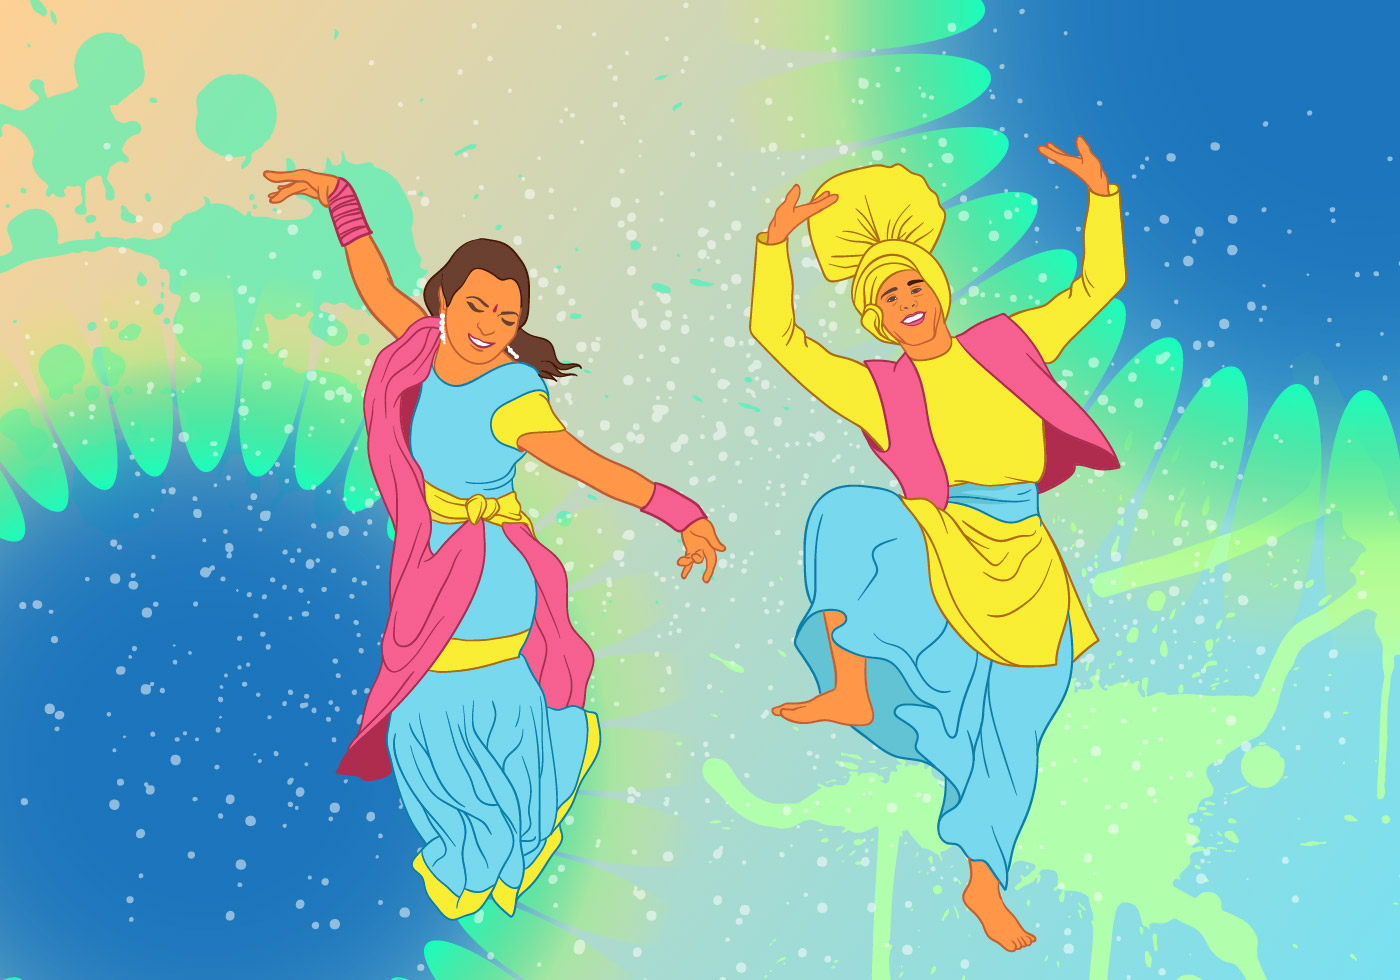 Bhangra Dance At New Year Festival Background - Download ...